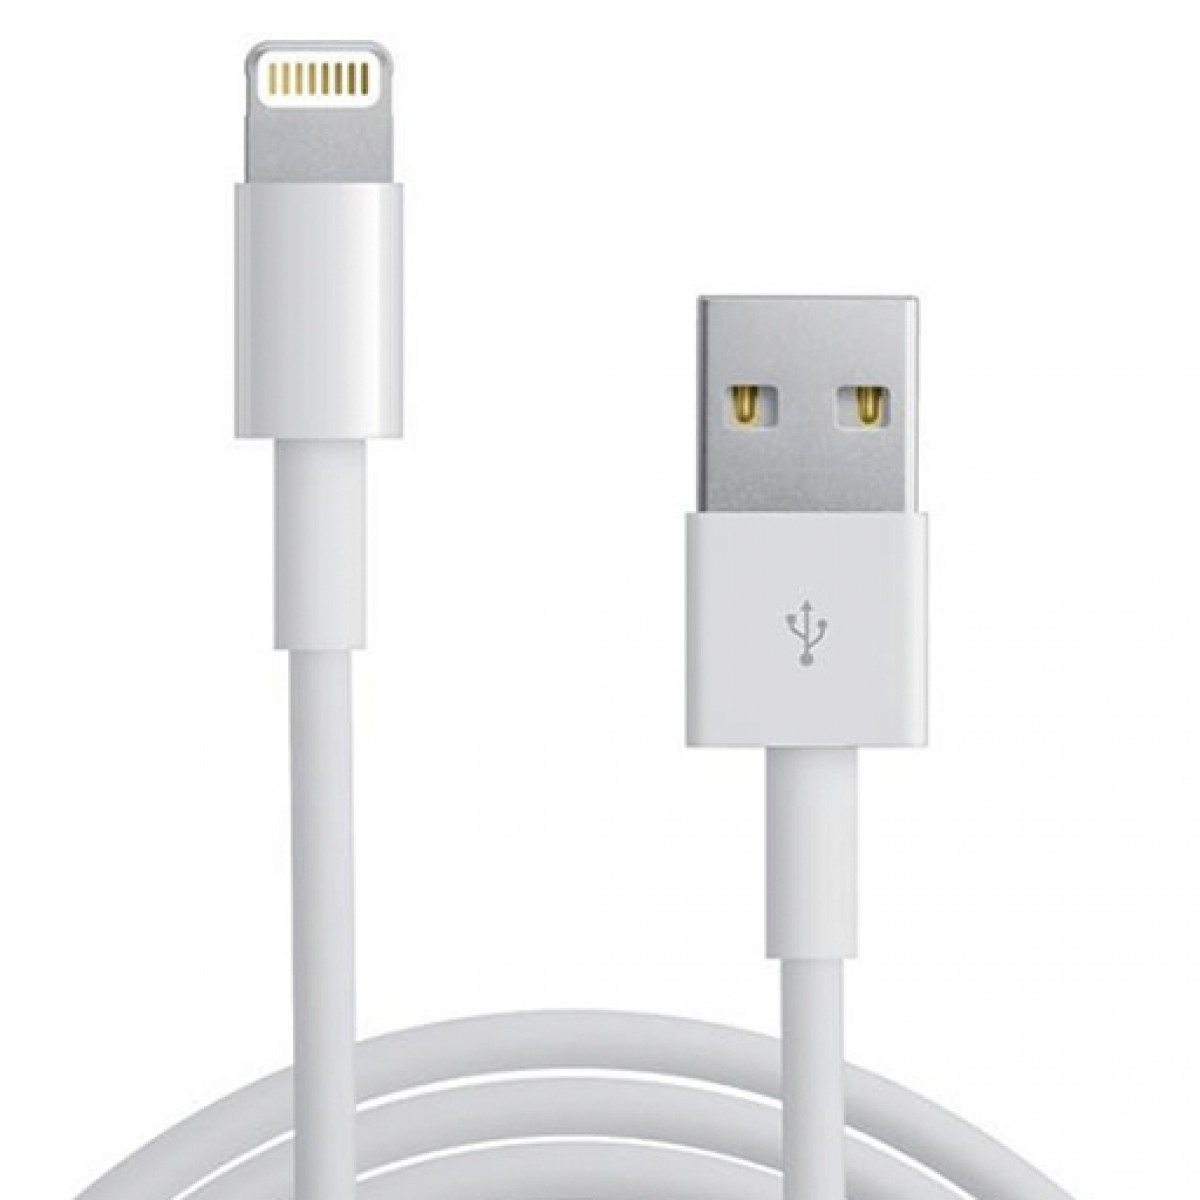 Charging/Data Cables